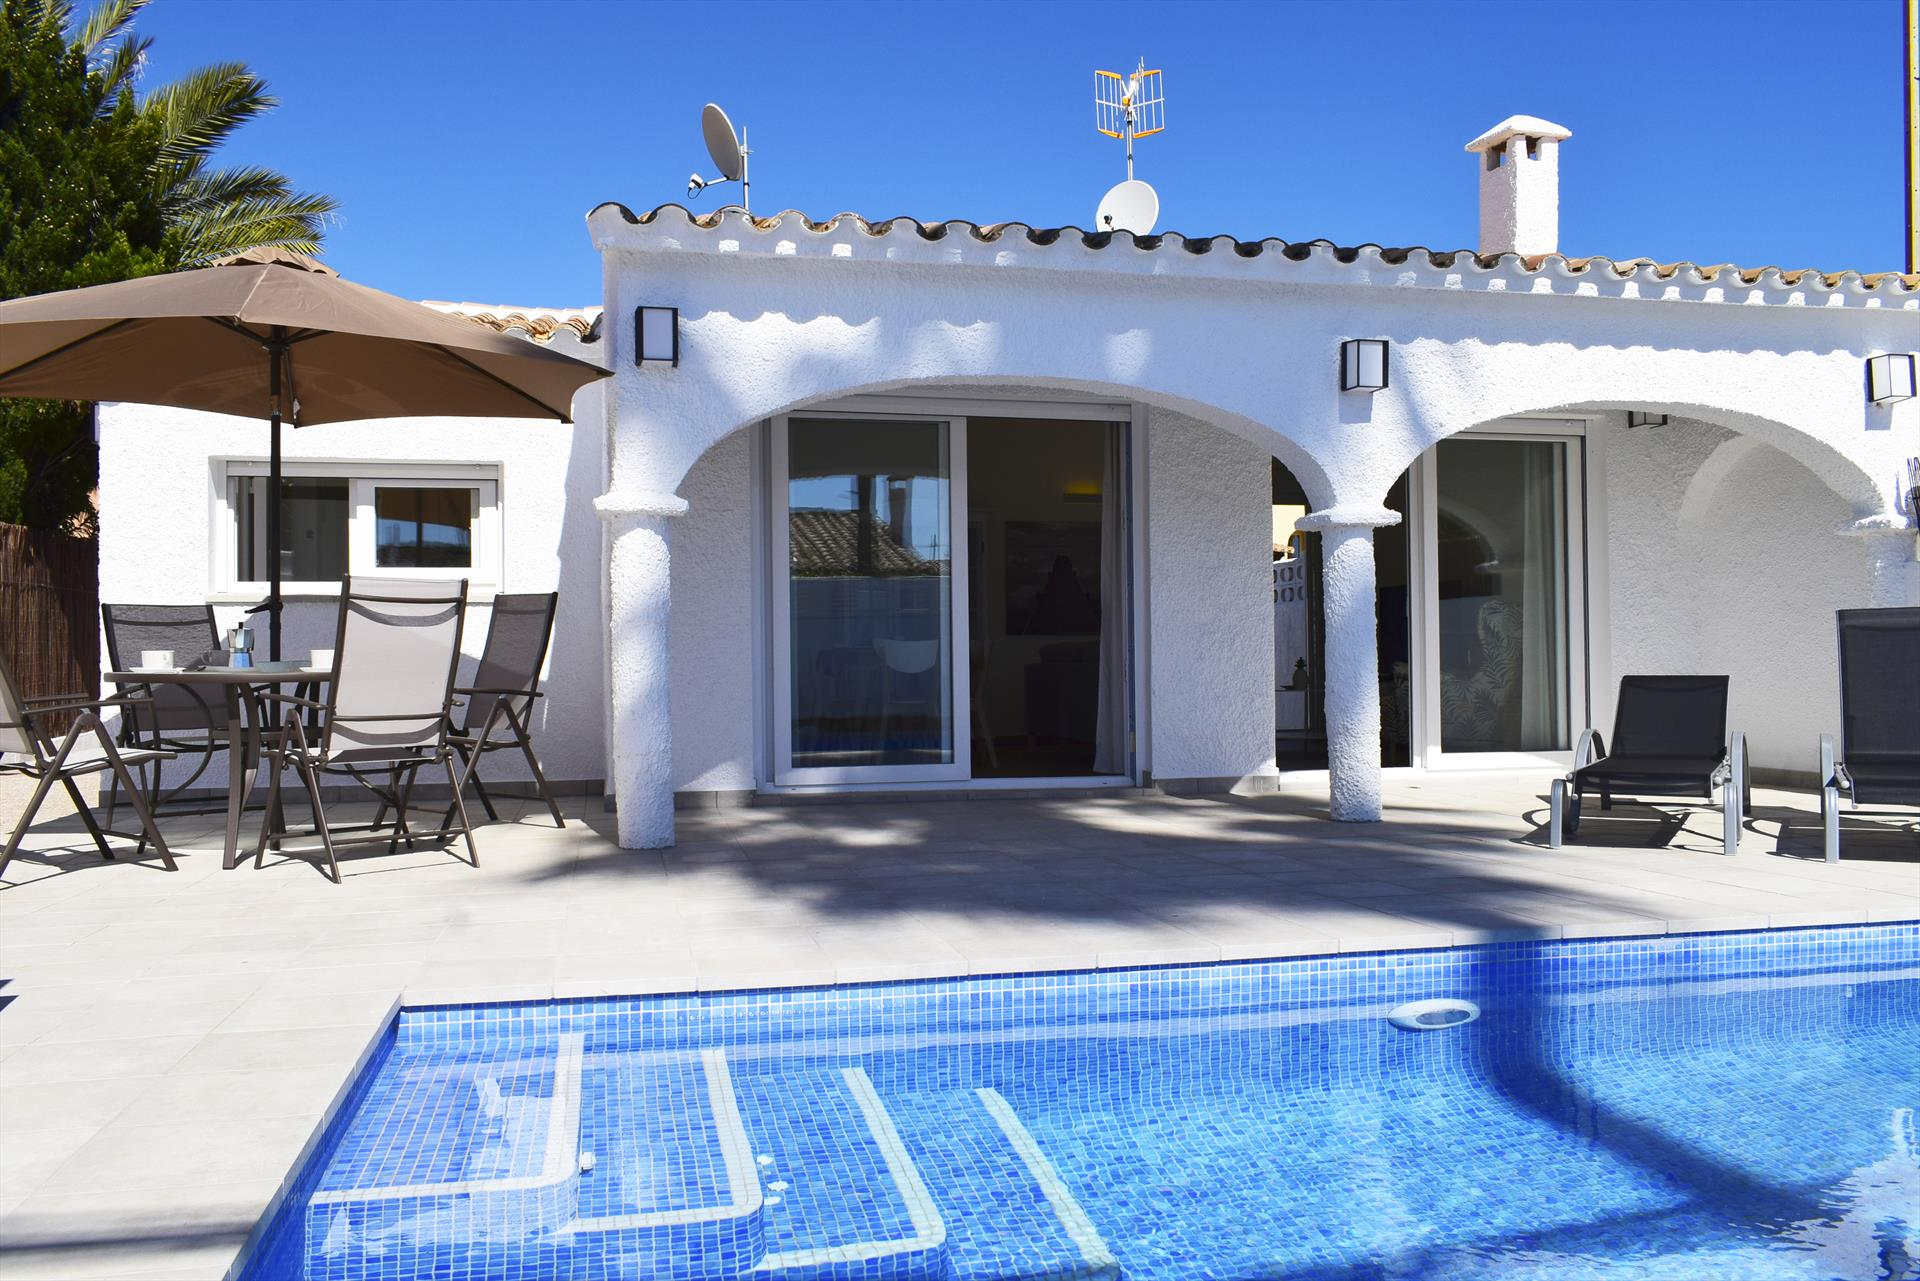 CH3200 Parcela y Piscina privada, Wonderful and cheerful holiday house in Denia, on the Costa Blanca, Spain  with private pool for 6 persons.....